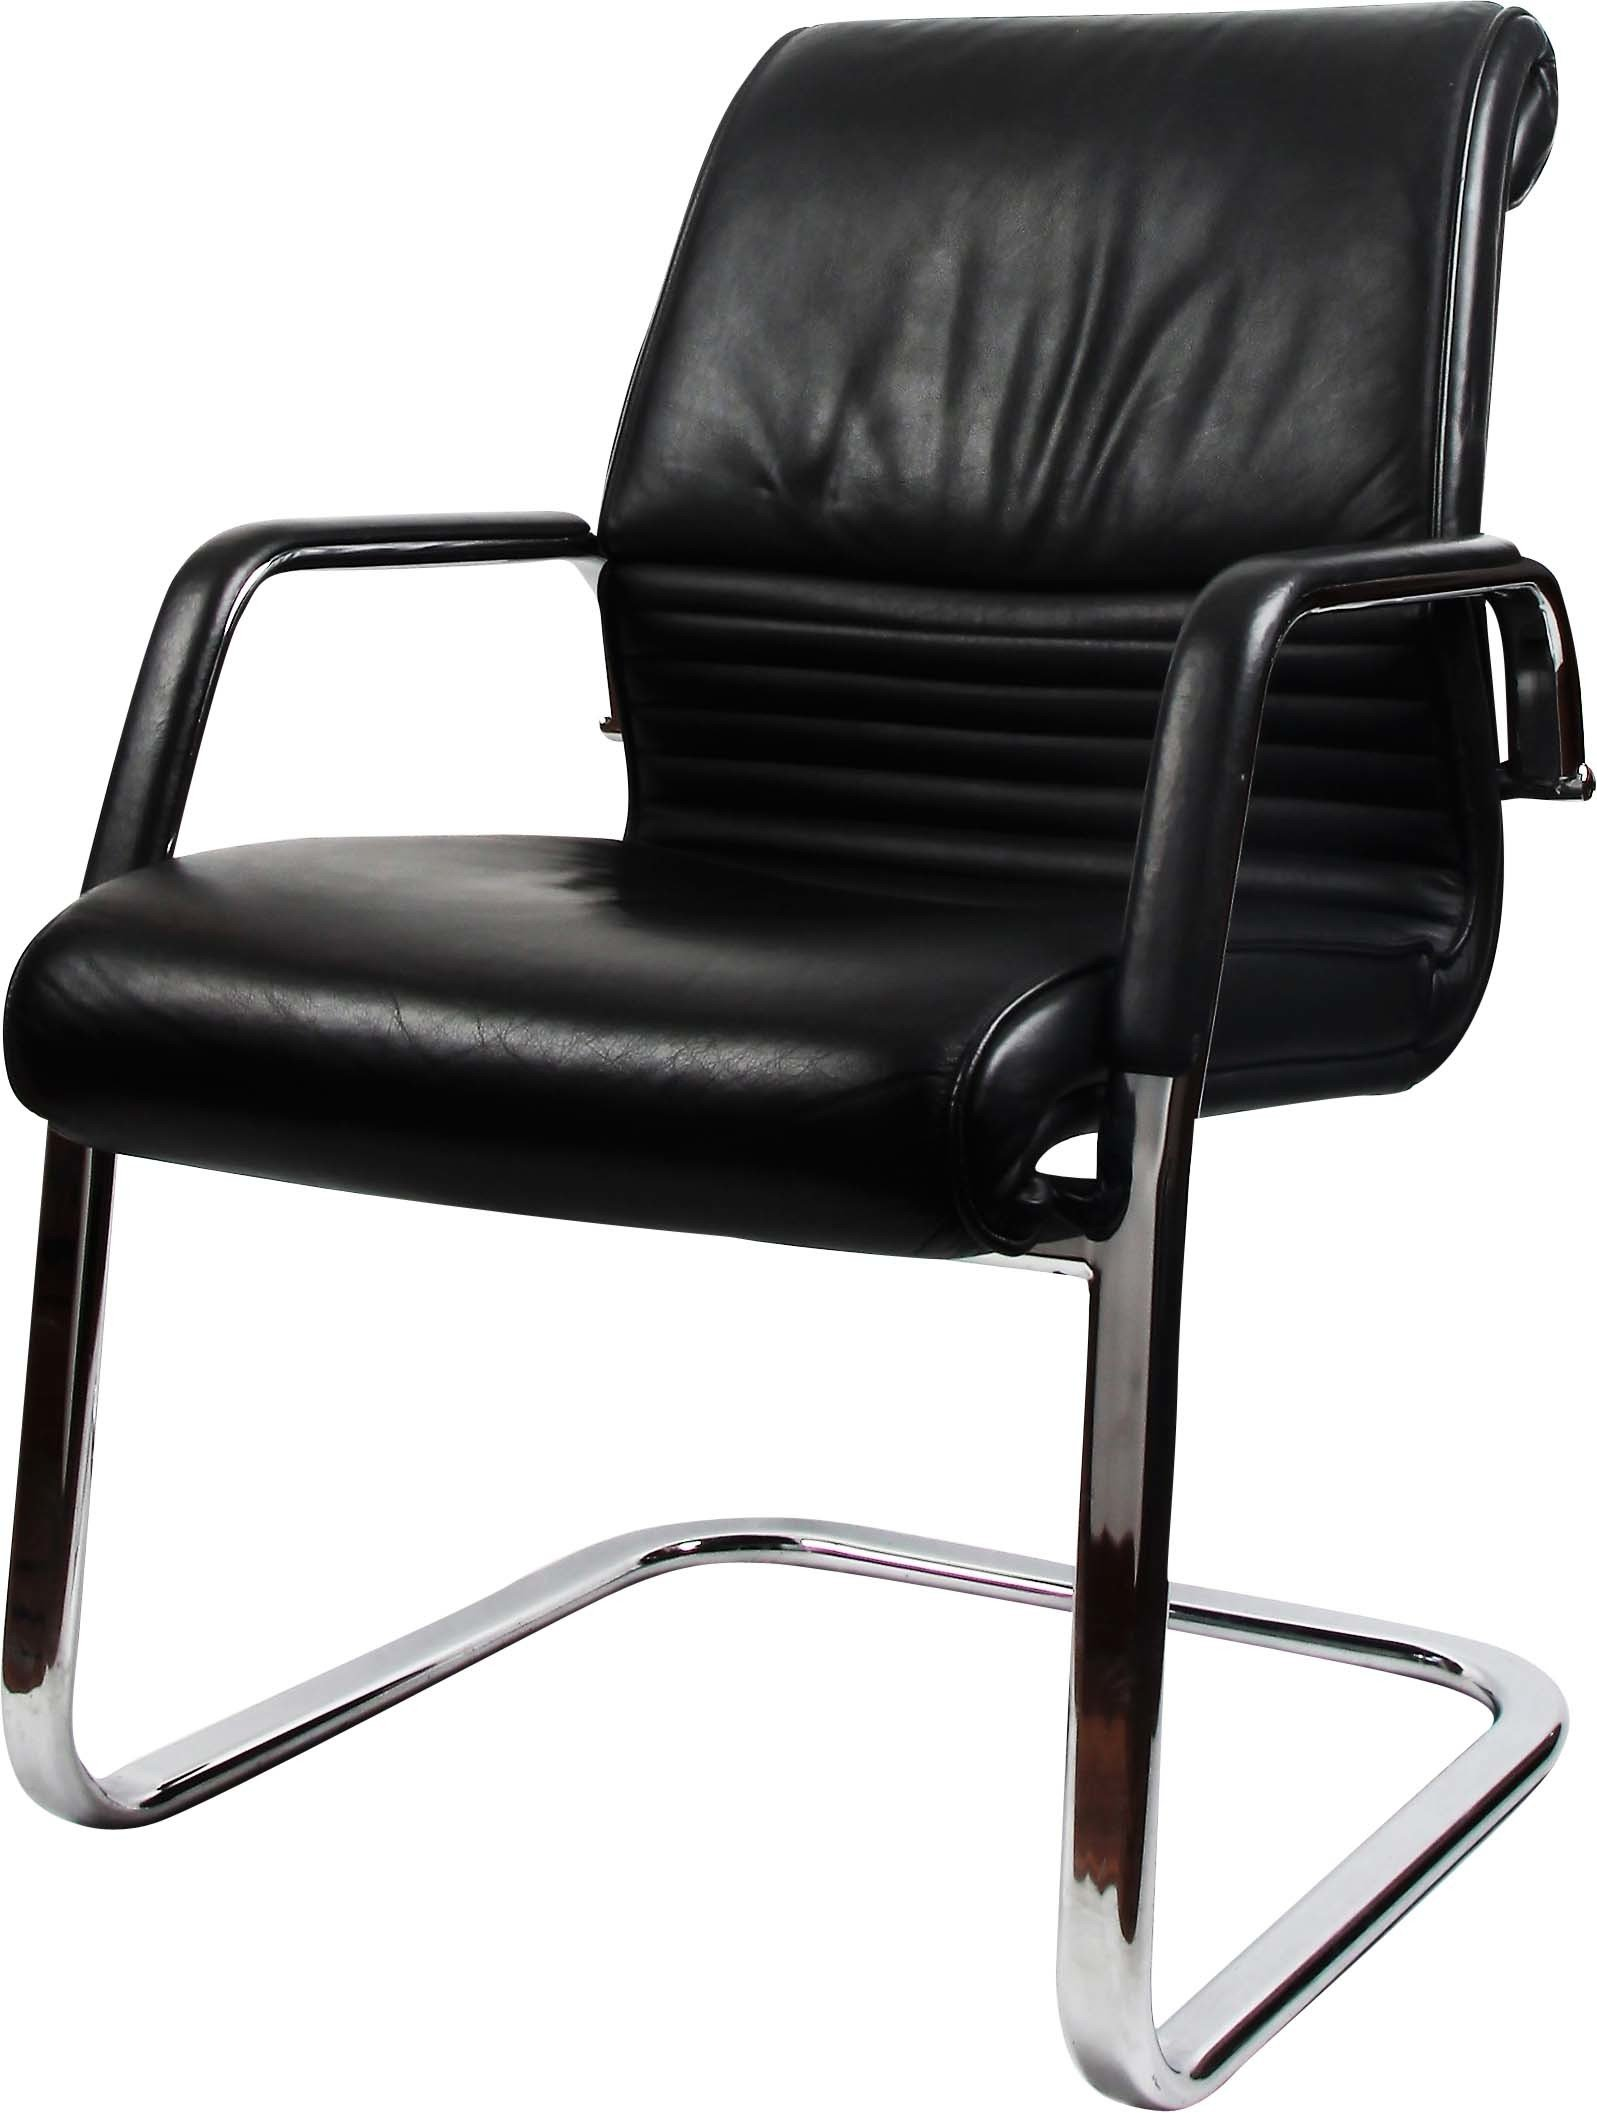 Office Chair, 1990s